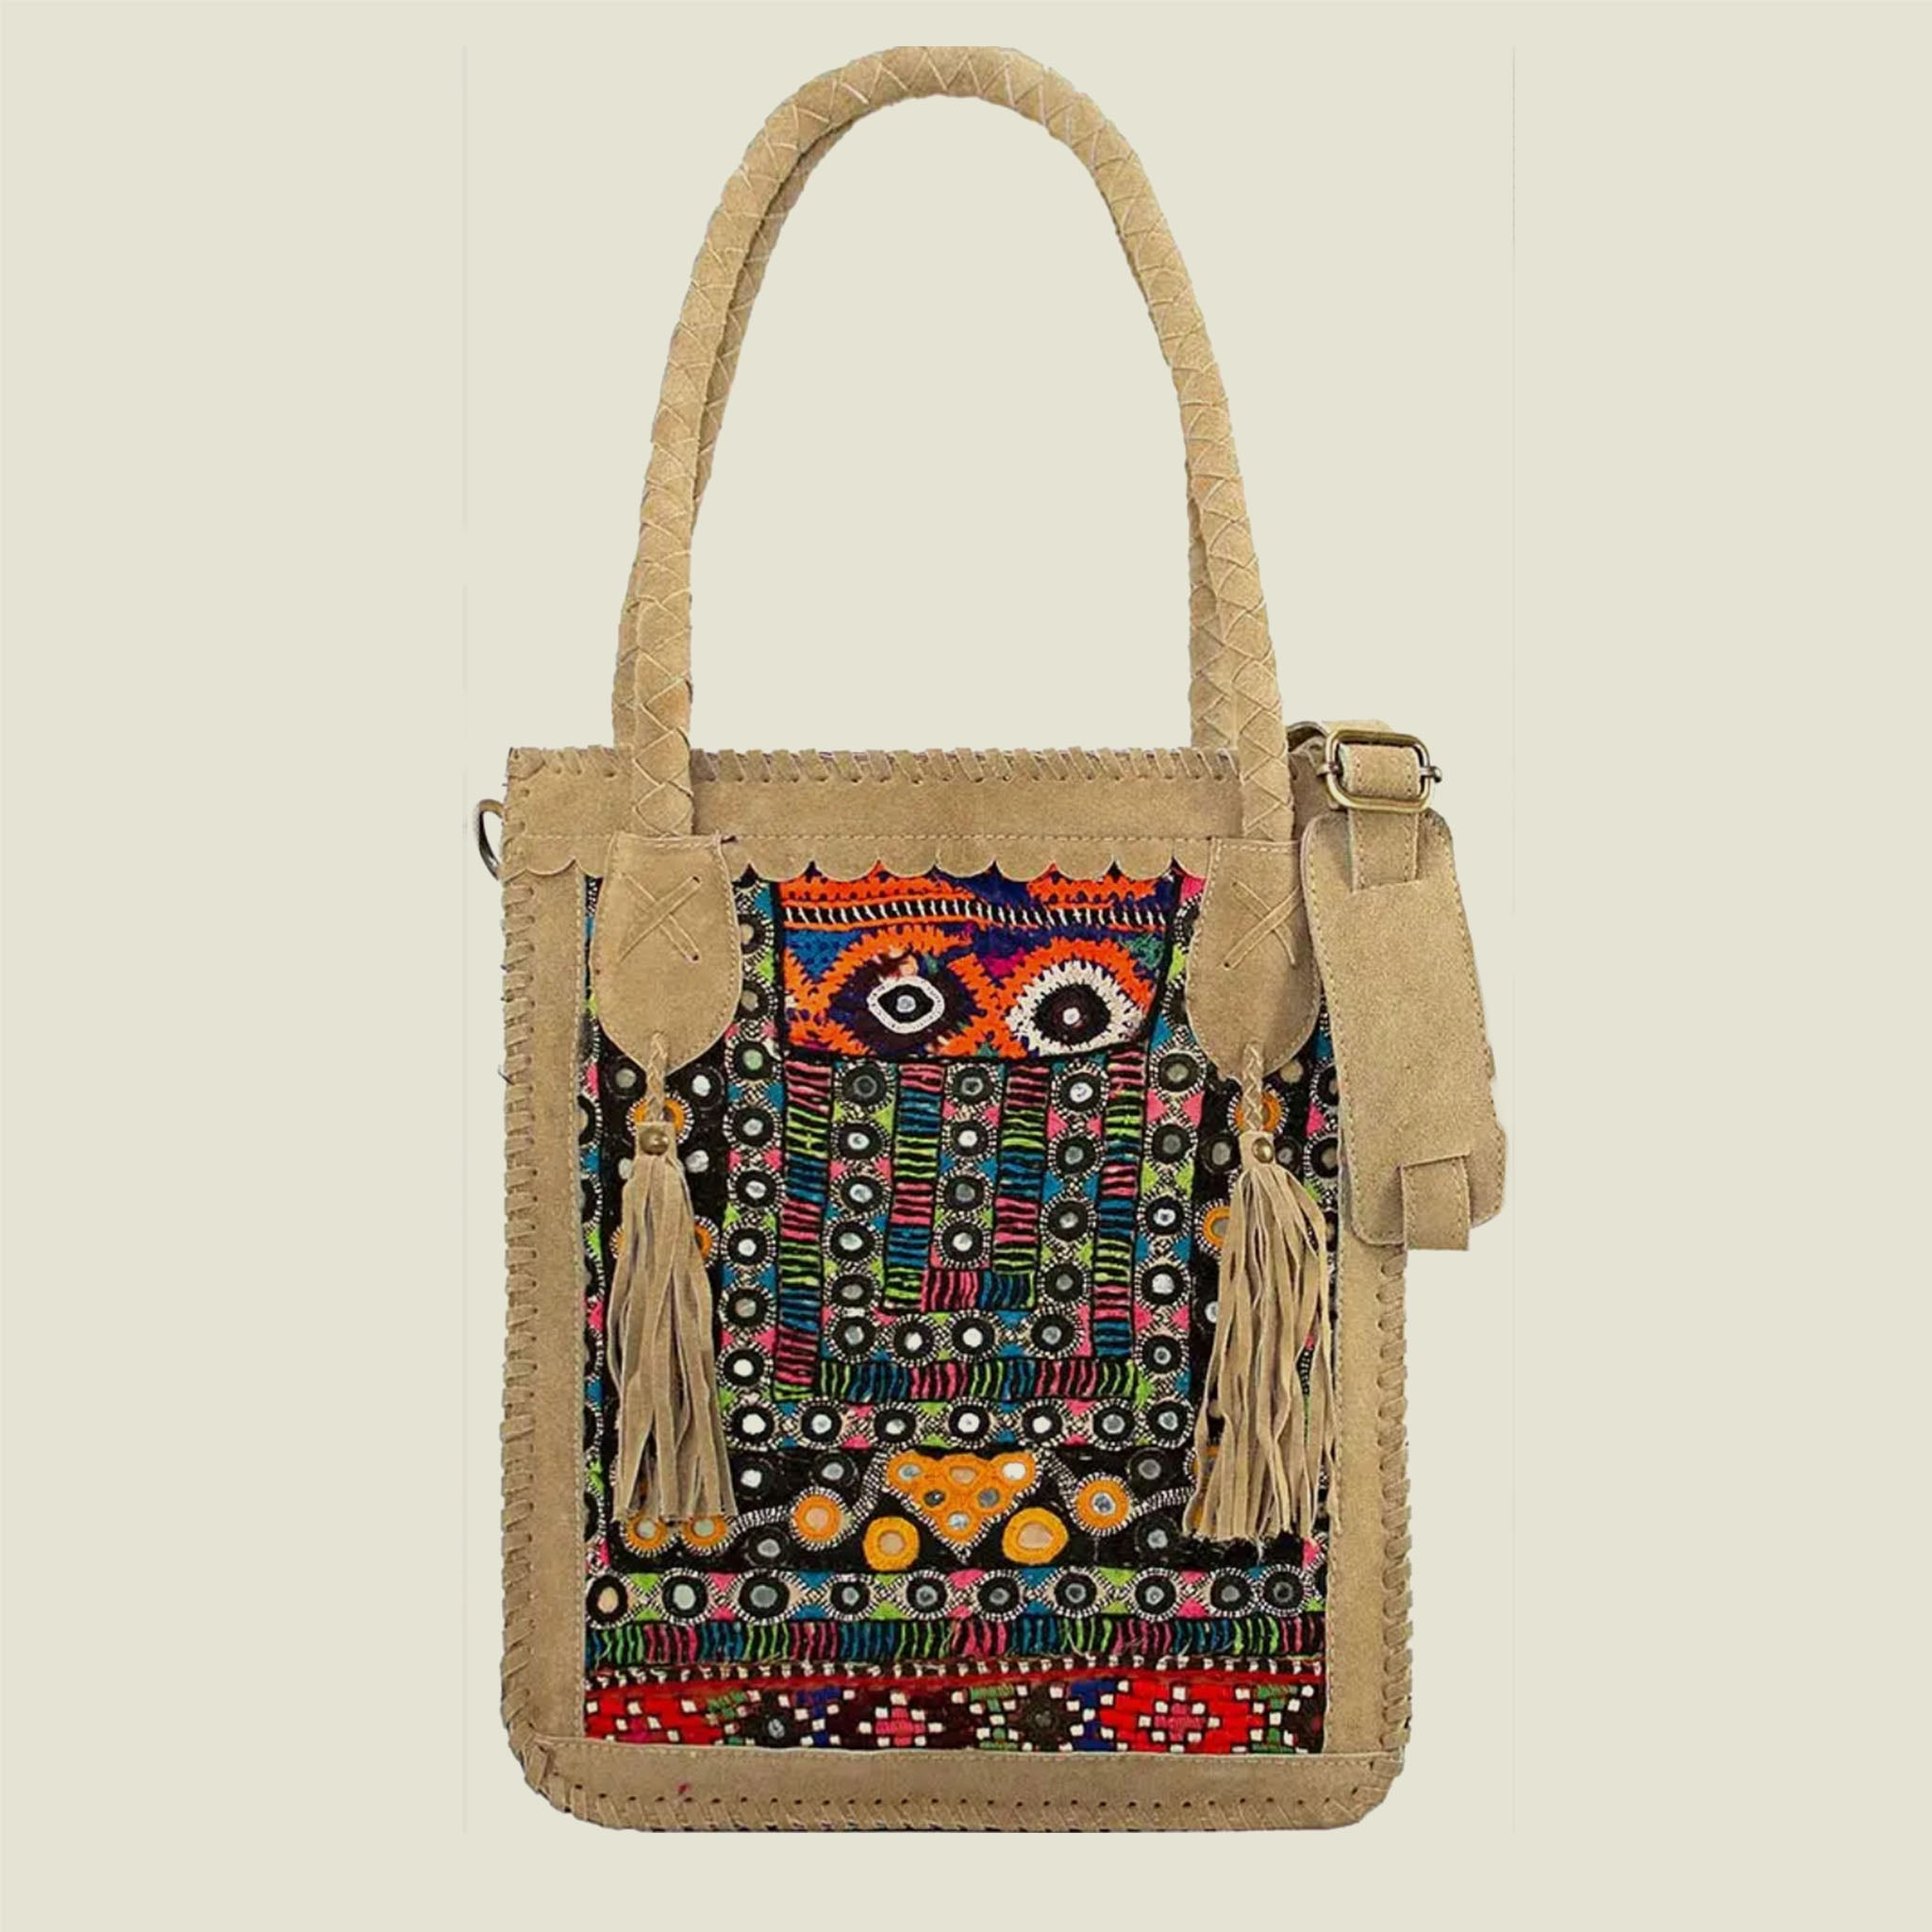 Vintage Tribal Bag 1 - Blackbird General Store